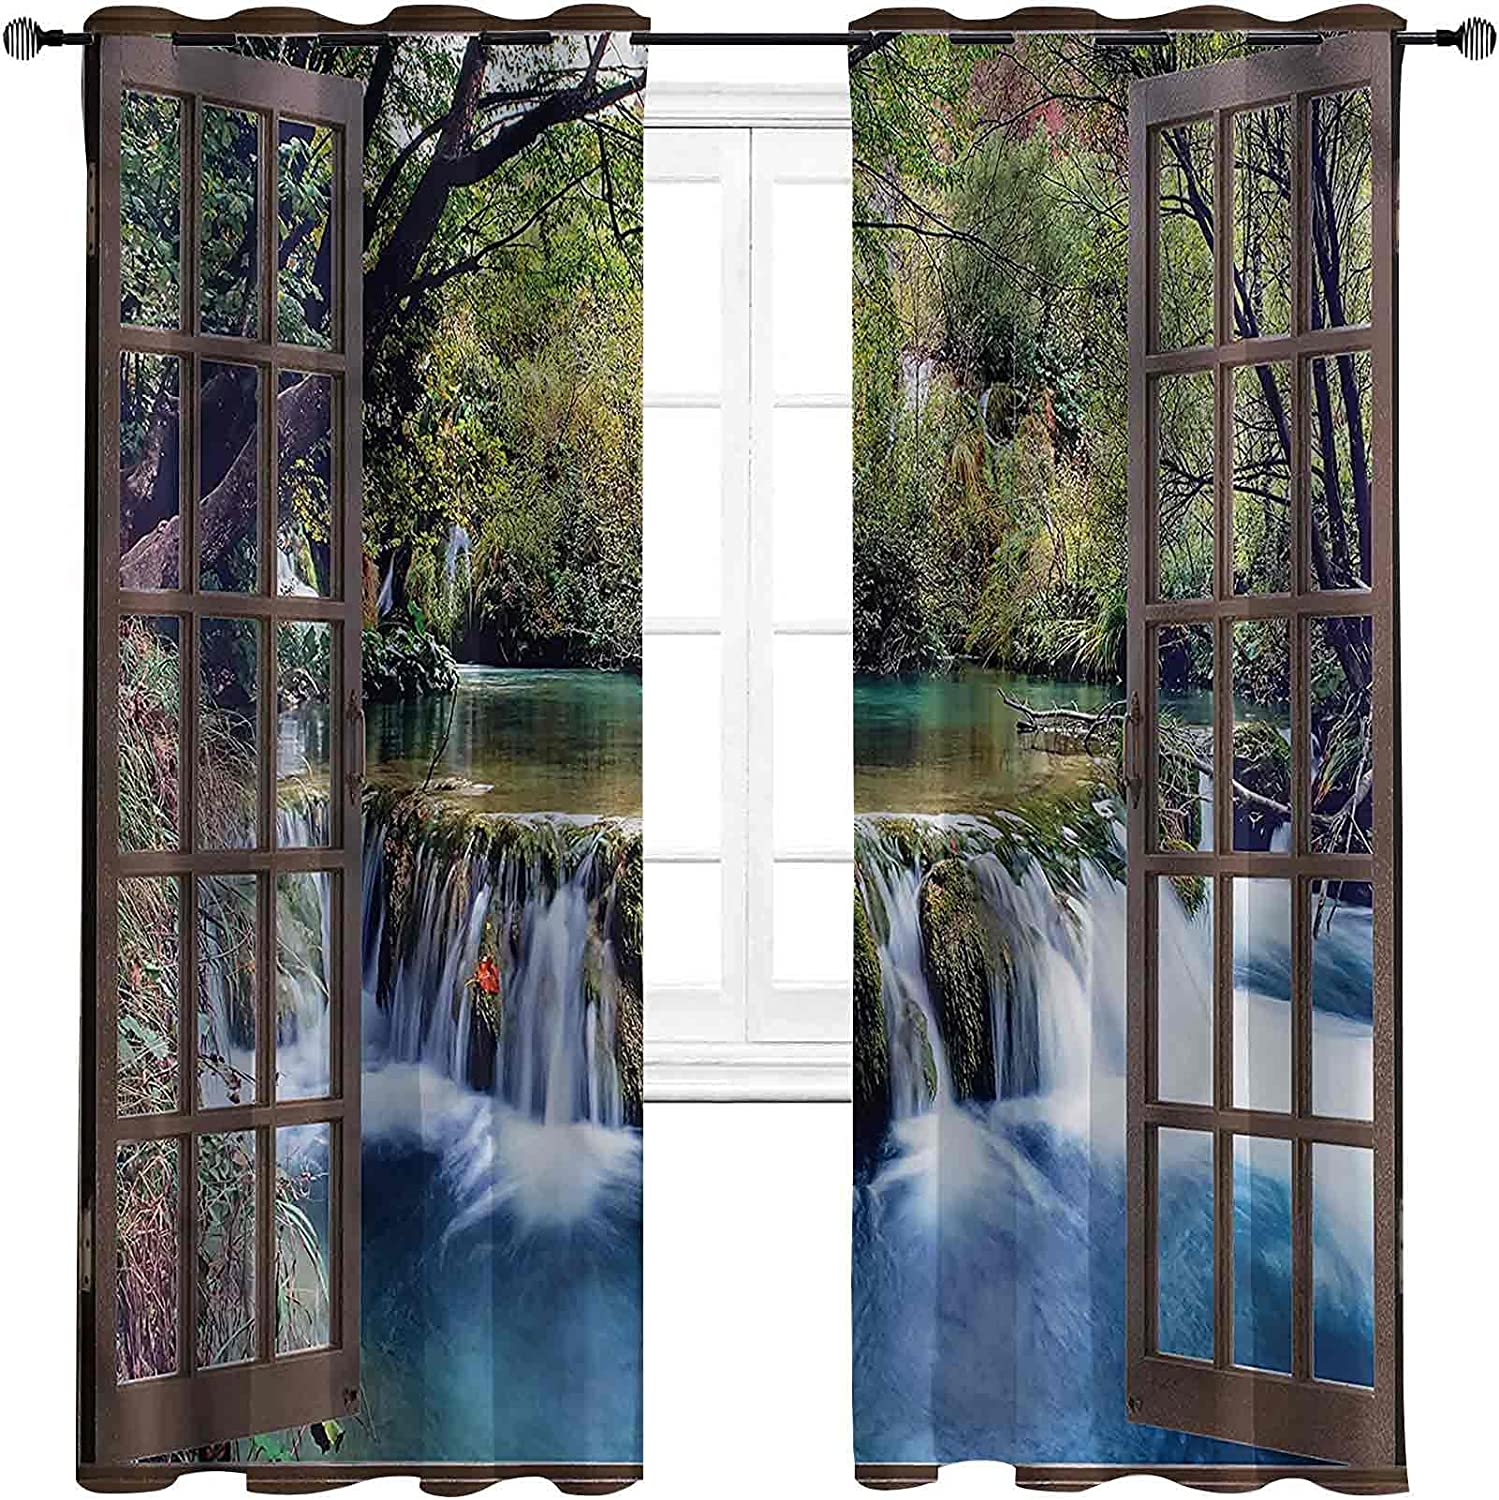 Waterfall The Living Room has Deep free shipping overseas Powerful Curtains D Blackout